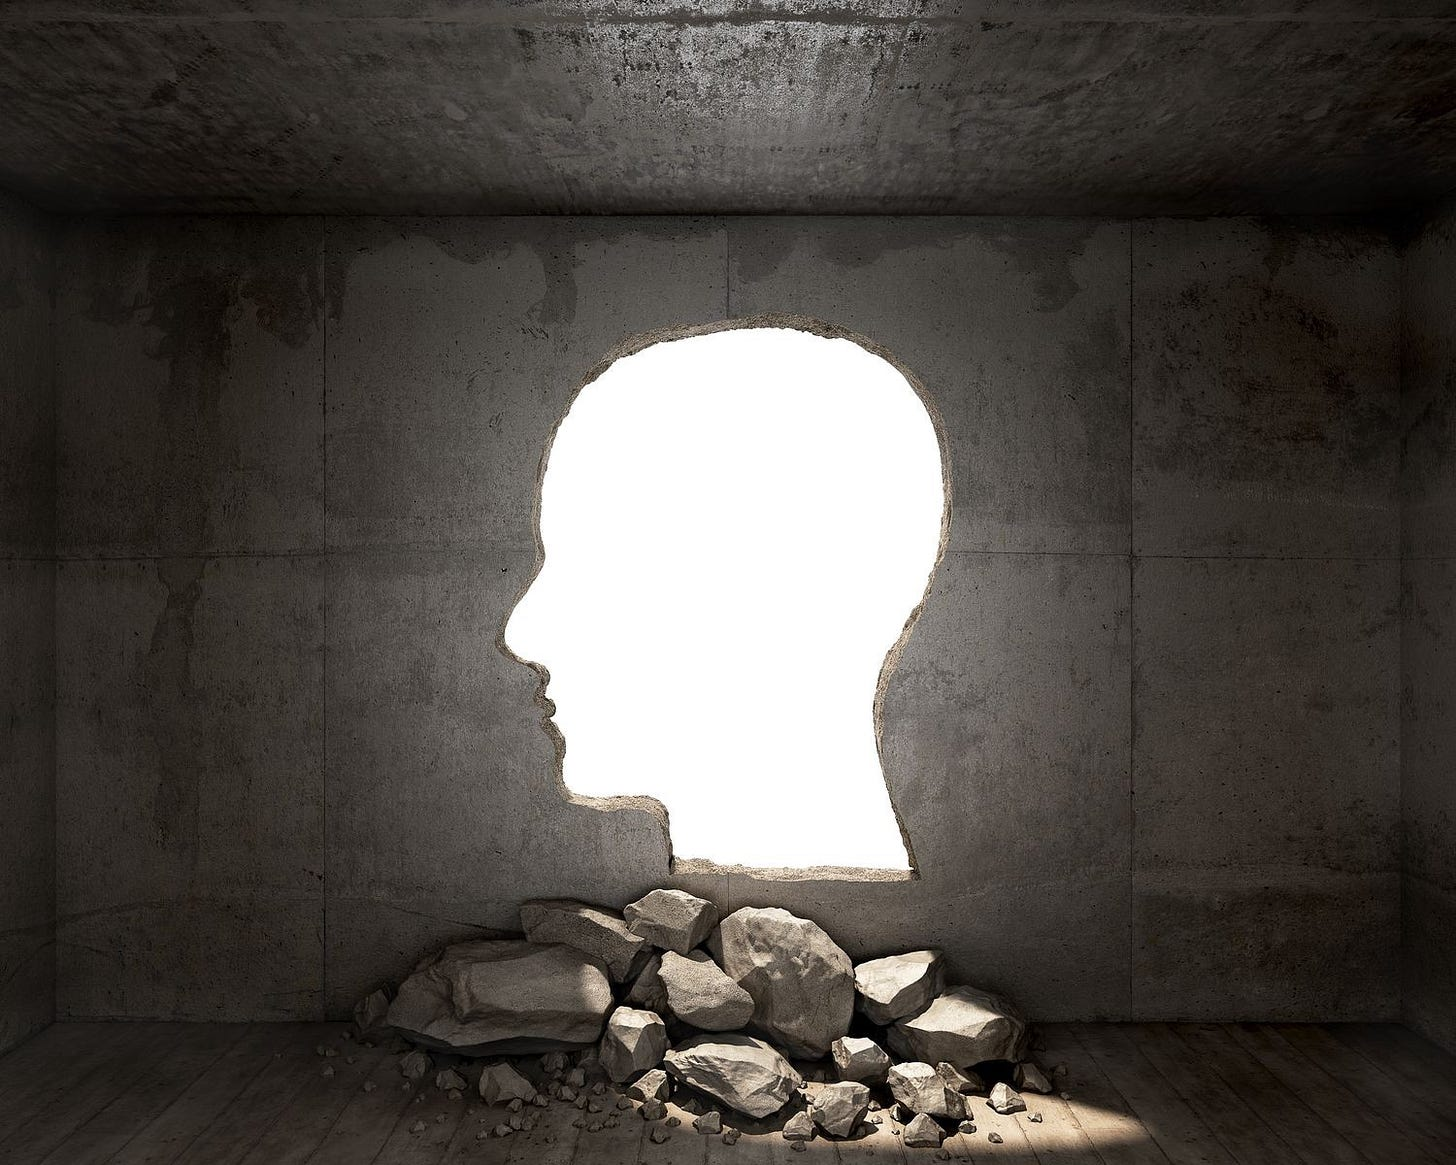 Head shape cut out of a wall, letting light in.